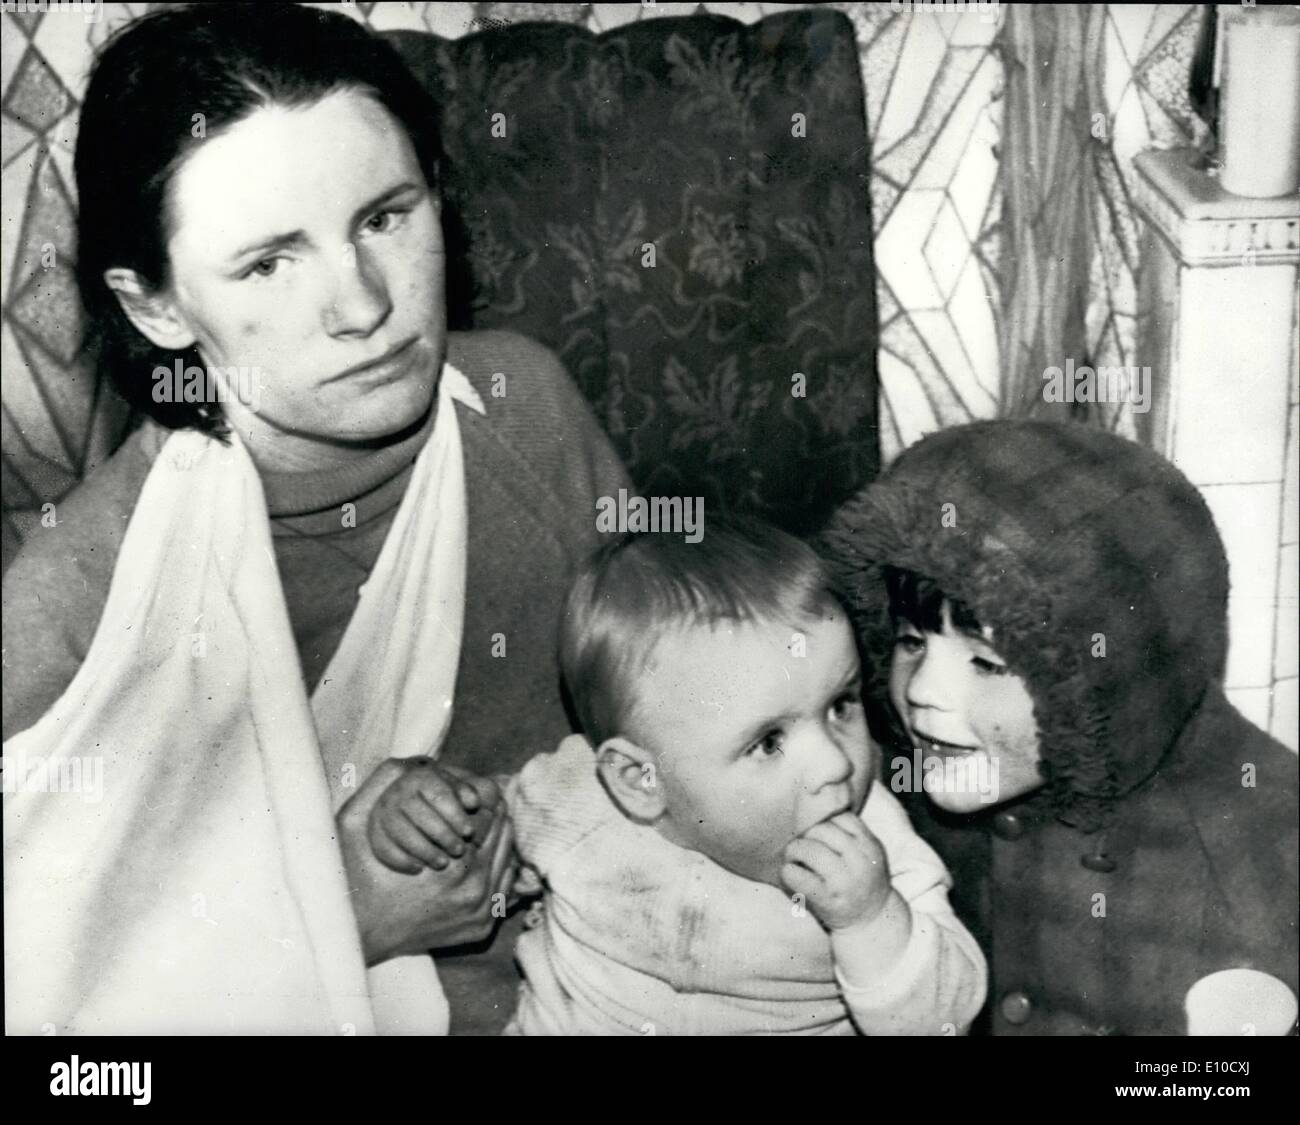 Apr. 04, 1972 - IRA TELL MOTHER-TO-BE TO GET OUT OR HOUSE WILL BE BURNED. MRS. PHILOMENA McGUCKEN, 24, the pregnant Belfast housewife beaten by a masked gang, said yesterday that the Provisional IRA have told her that her two-storey council house will be burned and her children attacked unless she leaves the area in 48 hours. Six men and two women, some of them armed, dragged Mrs McGucken from her home in Springhill Avenue. She was roped to a lamp-post, beaten with hurley sticks - like hockey sticks - and branded with red point and feathers. PHOTO SHOWS: MRS - Stock Image